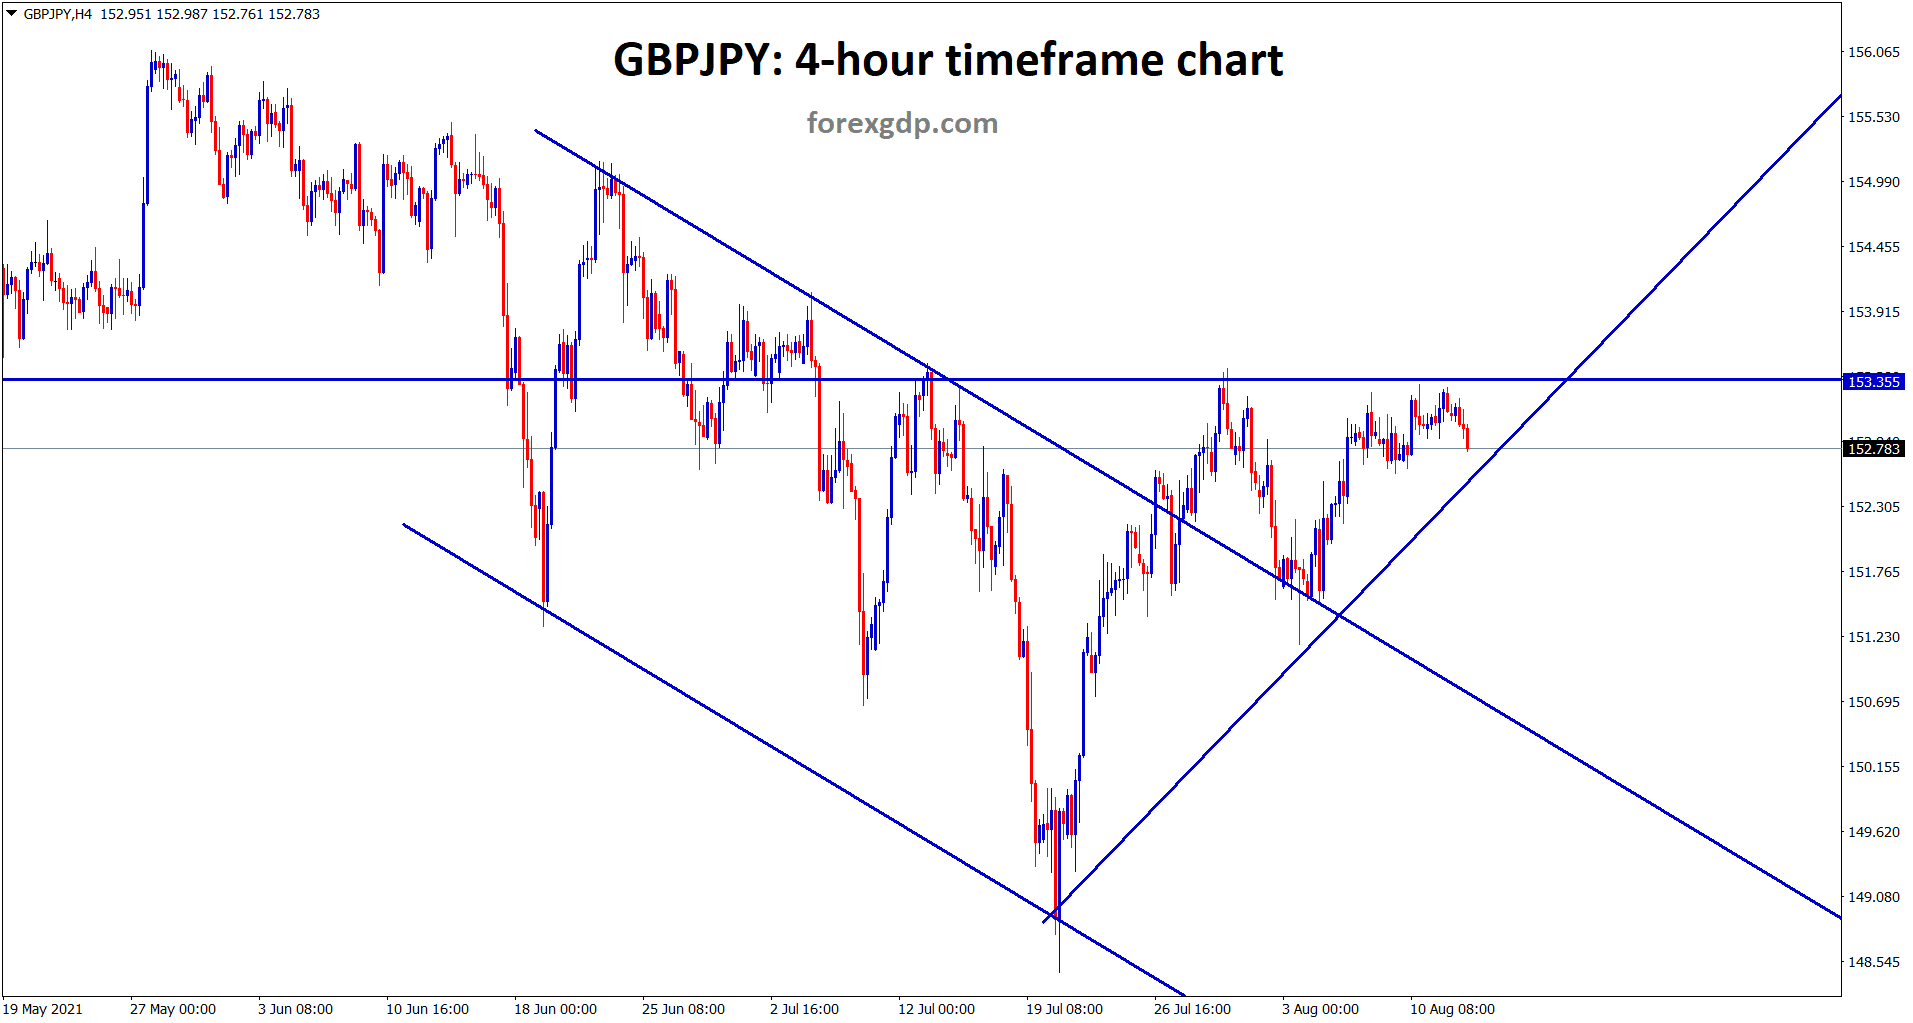 In another view 4 hour timeframe GBPJPY has formed an ascending triangle pattern recently